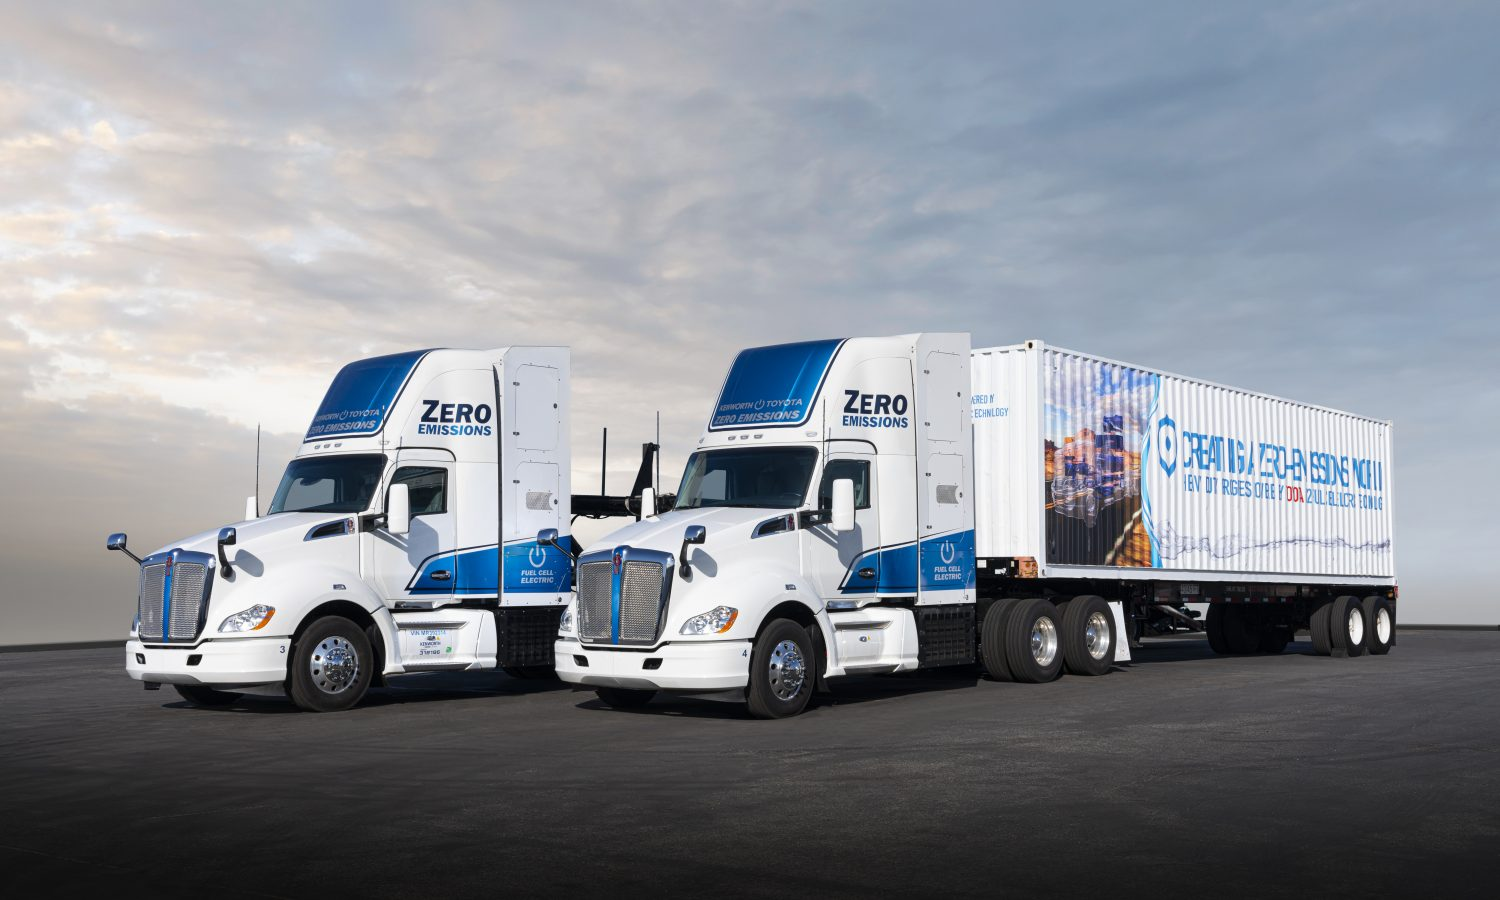 First Heavy Duty Fuel Cell Electric Trucks Set for Delivery to Pilot Program Customers at Ports of L.A. and Long Beach